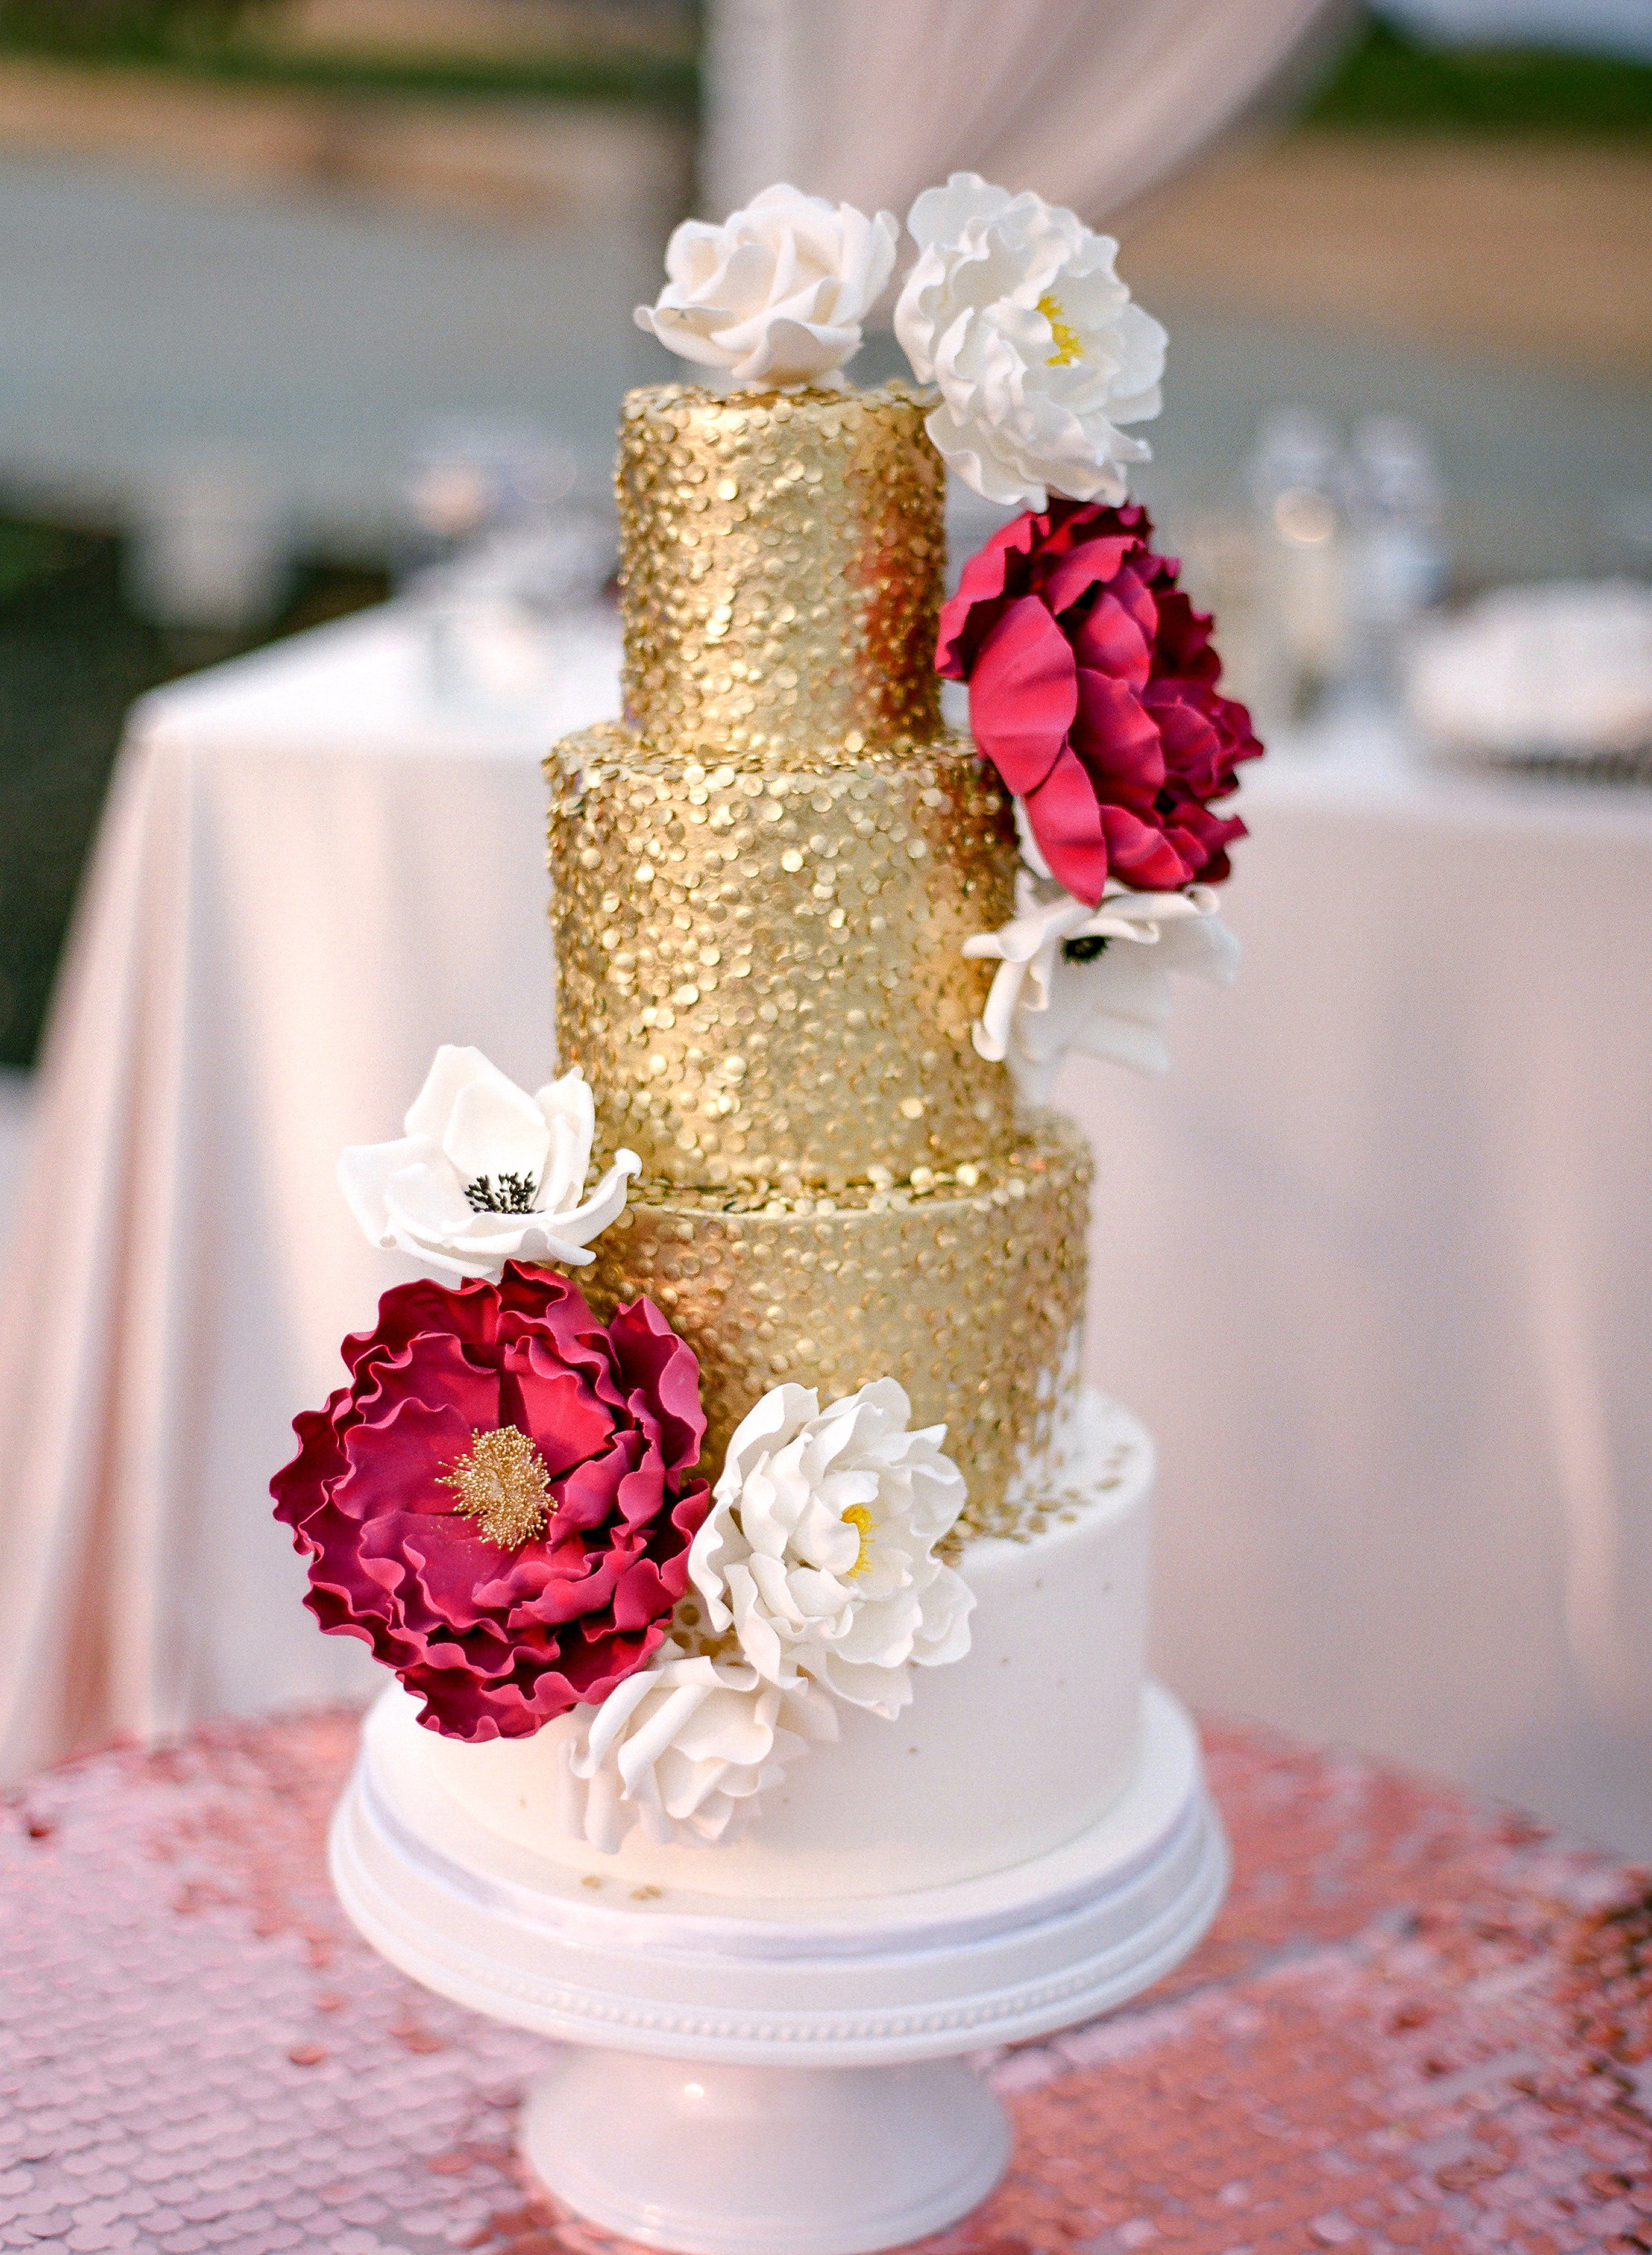 Amador_County_Wedding_Cake_Burgundy_Red_Gold_Sparkles_Rancho_Victoria_Vineyard_Northern_California.jpg